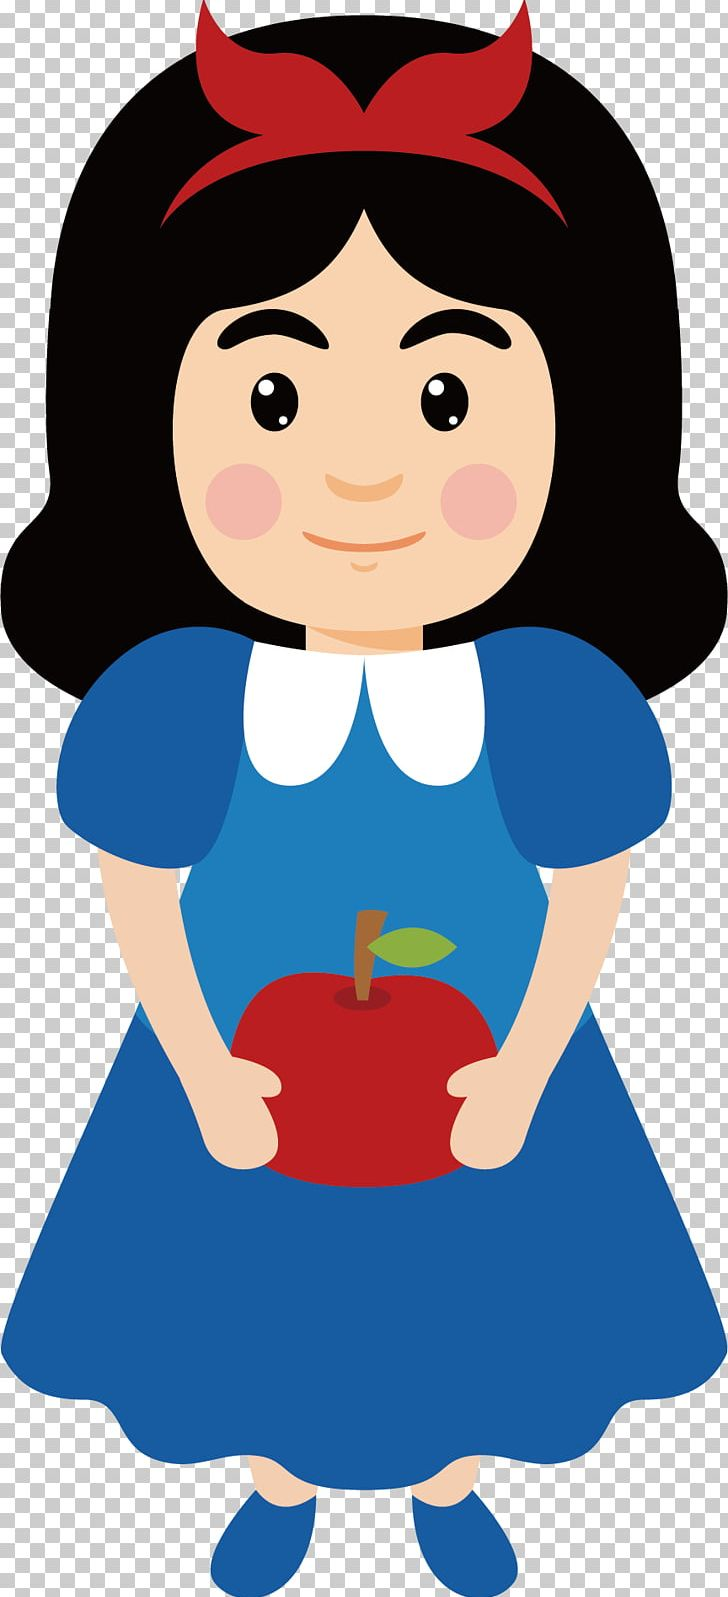 medium resolution of snow white snow white cartoon png clipart black hair black white bow boy cartoon free png download